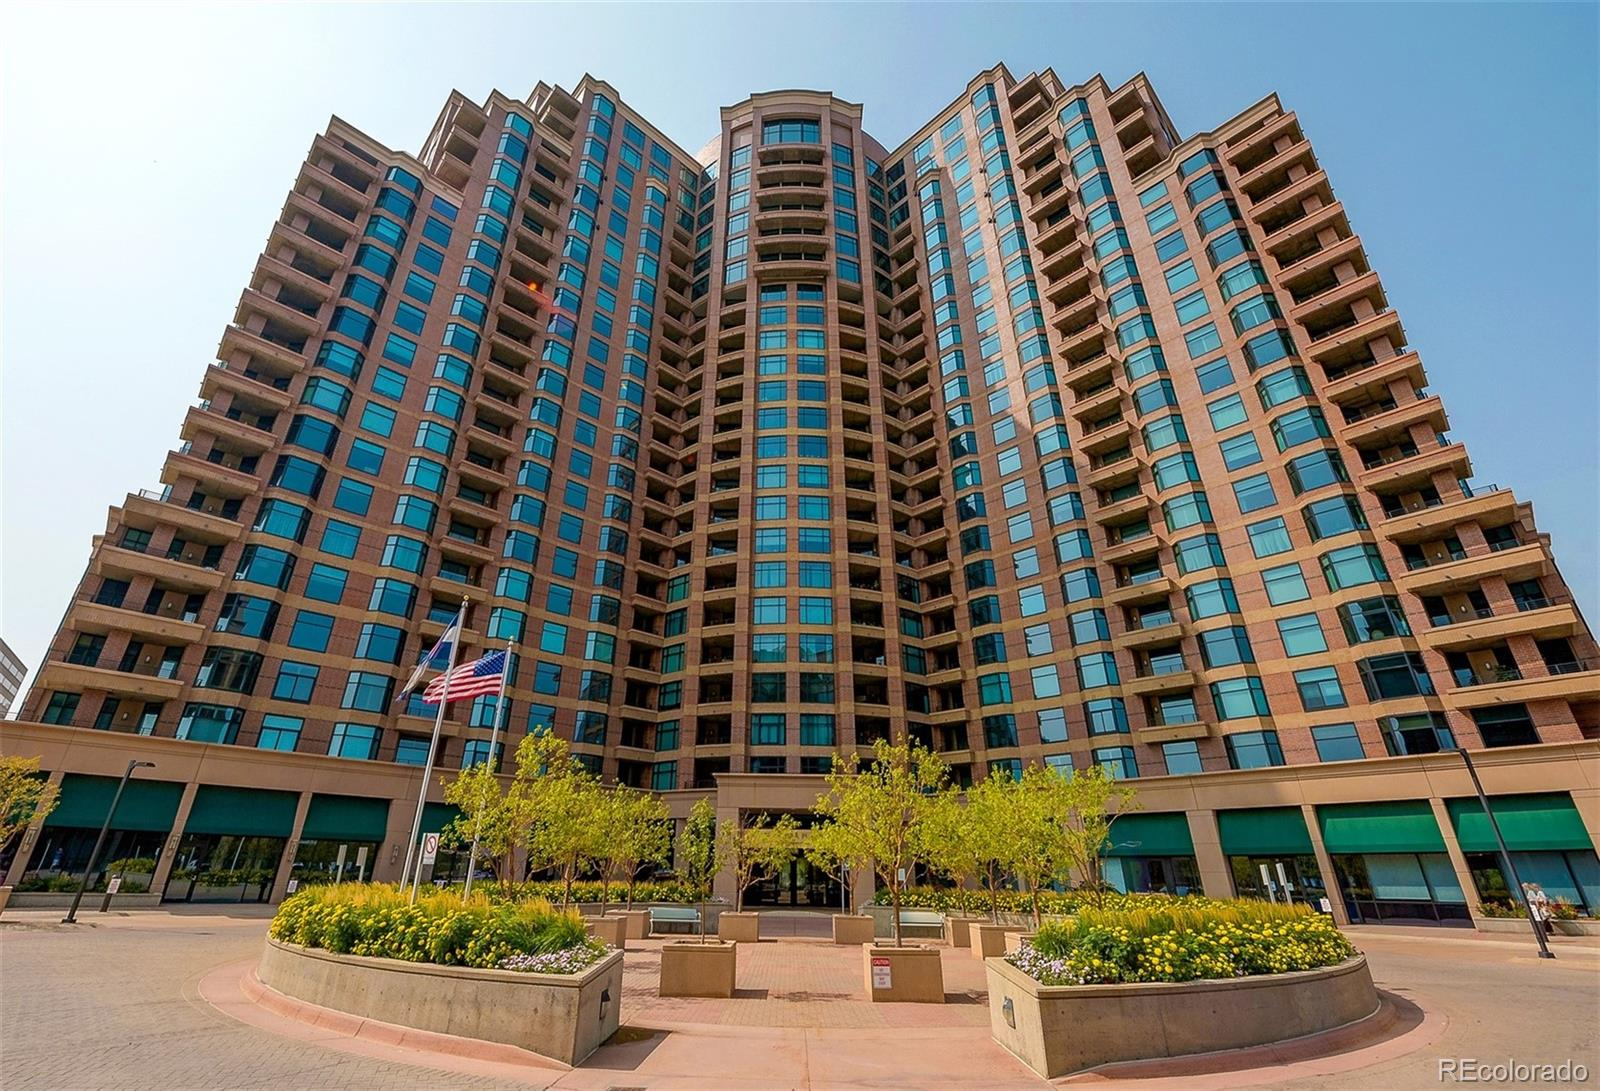 Location, Location, Location!!! Enjoy luxurious & friendly living at Penterra Plaza! This beautiful 2 bed, 2 bath condo has lots of windows which create bright & airy spaces in this open floor plan. Enter the unit & you are dazzled by the expansive views through the great room windows! the kitchen is to the left & has all stainless appliances, lots of counter & cabinet space it's is open to the great room w/a countertop/ eating bar you'll enjoy using for breakfast or a cup of coffee!  The great room has large windows for light & space for dining & living areas! A door leads out to the private balcony for indoor outdoor living & entertaining! The large master suite has a sliding door out to the balcony, walk in closet with a professional closet organizing system installed & an ensuite bathroom. The ensuite features a soaking tub, walk in shower, a loo room & dual sinks! Plenty of cabinet space for storage! On the other side of the unit is a hall bathroom w/walk in shower, laundry room w/space for washer & dryer, an office in the hallway that has desk & built in shelves. A secondary bedroom w/big bay window! All this is located in an amazing building! Enjoy the Grand lobby w/24 hour security & front desk service/concierge service, business center complete w/WIFI, multiple computer stations & a large conference room, state of the art fitness facility,  2 private luxury guest units can be reserved for out of town guests. All common areas were recently updated!!! The second floor clubhouse features indoor gathering area with abundant seating & audio/visual, full kitchen & an outdoor area w/grills & outdoor furniture. Condo includes a Deeded Parking space R1104,in a heated covered secured garage & a storage unit. A 2nd parking spot is leased for $125/mo& is paid through June of 2021. Walk to many DTC restaurants, coffee shops, grocery store, Wallace Park, Light Rail & Bus to DIA! Close to I-25 & I-225 for fast commute! Don't Miss this one! Come see it before it's gone!